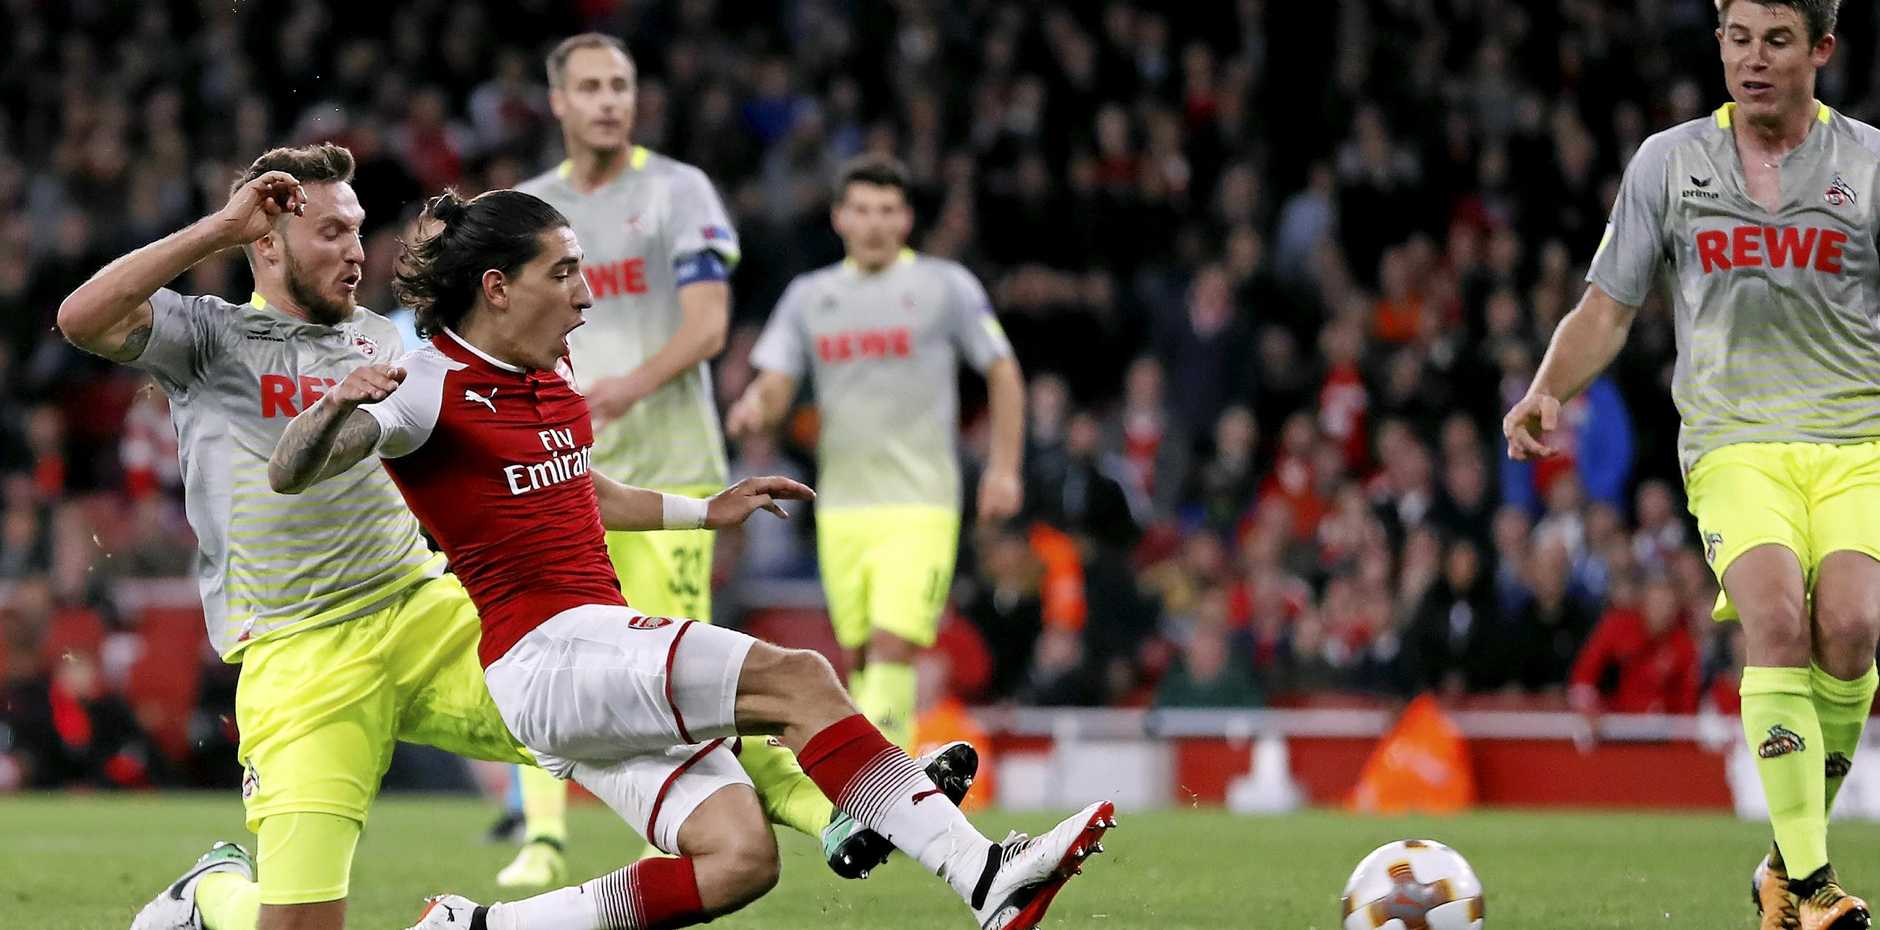 Arsenal's Hector Bellerin scores his side's third goal against FC Cologne at the Emirates Stadium.